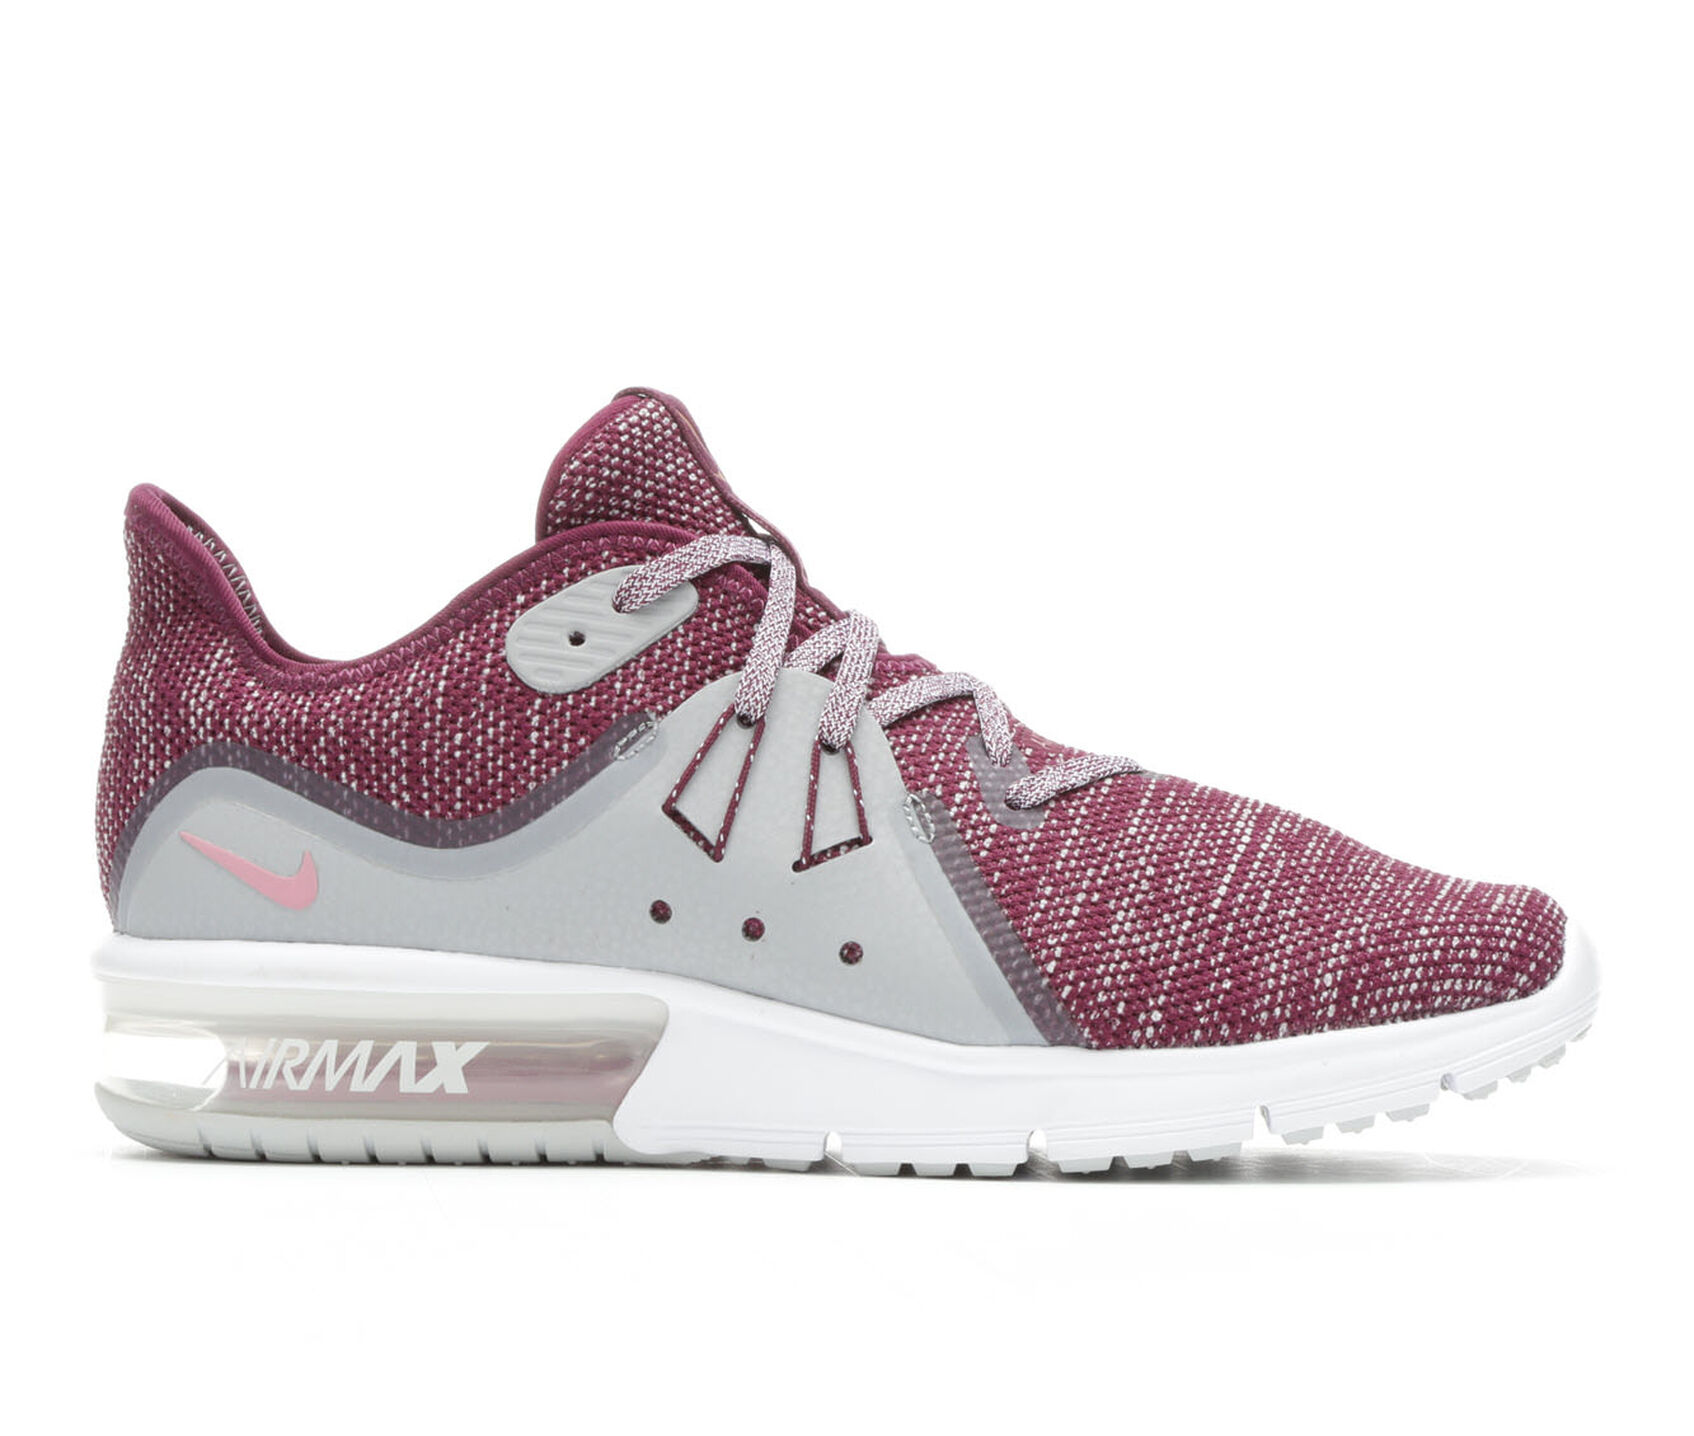 Women s Nike Air Max Sequent 3 Running Shoes   Shoe Carnival fc2b2b66ad